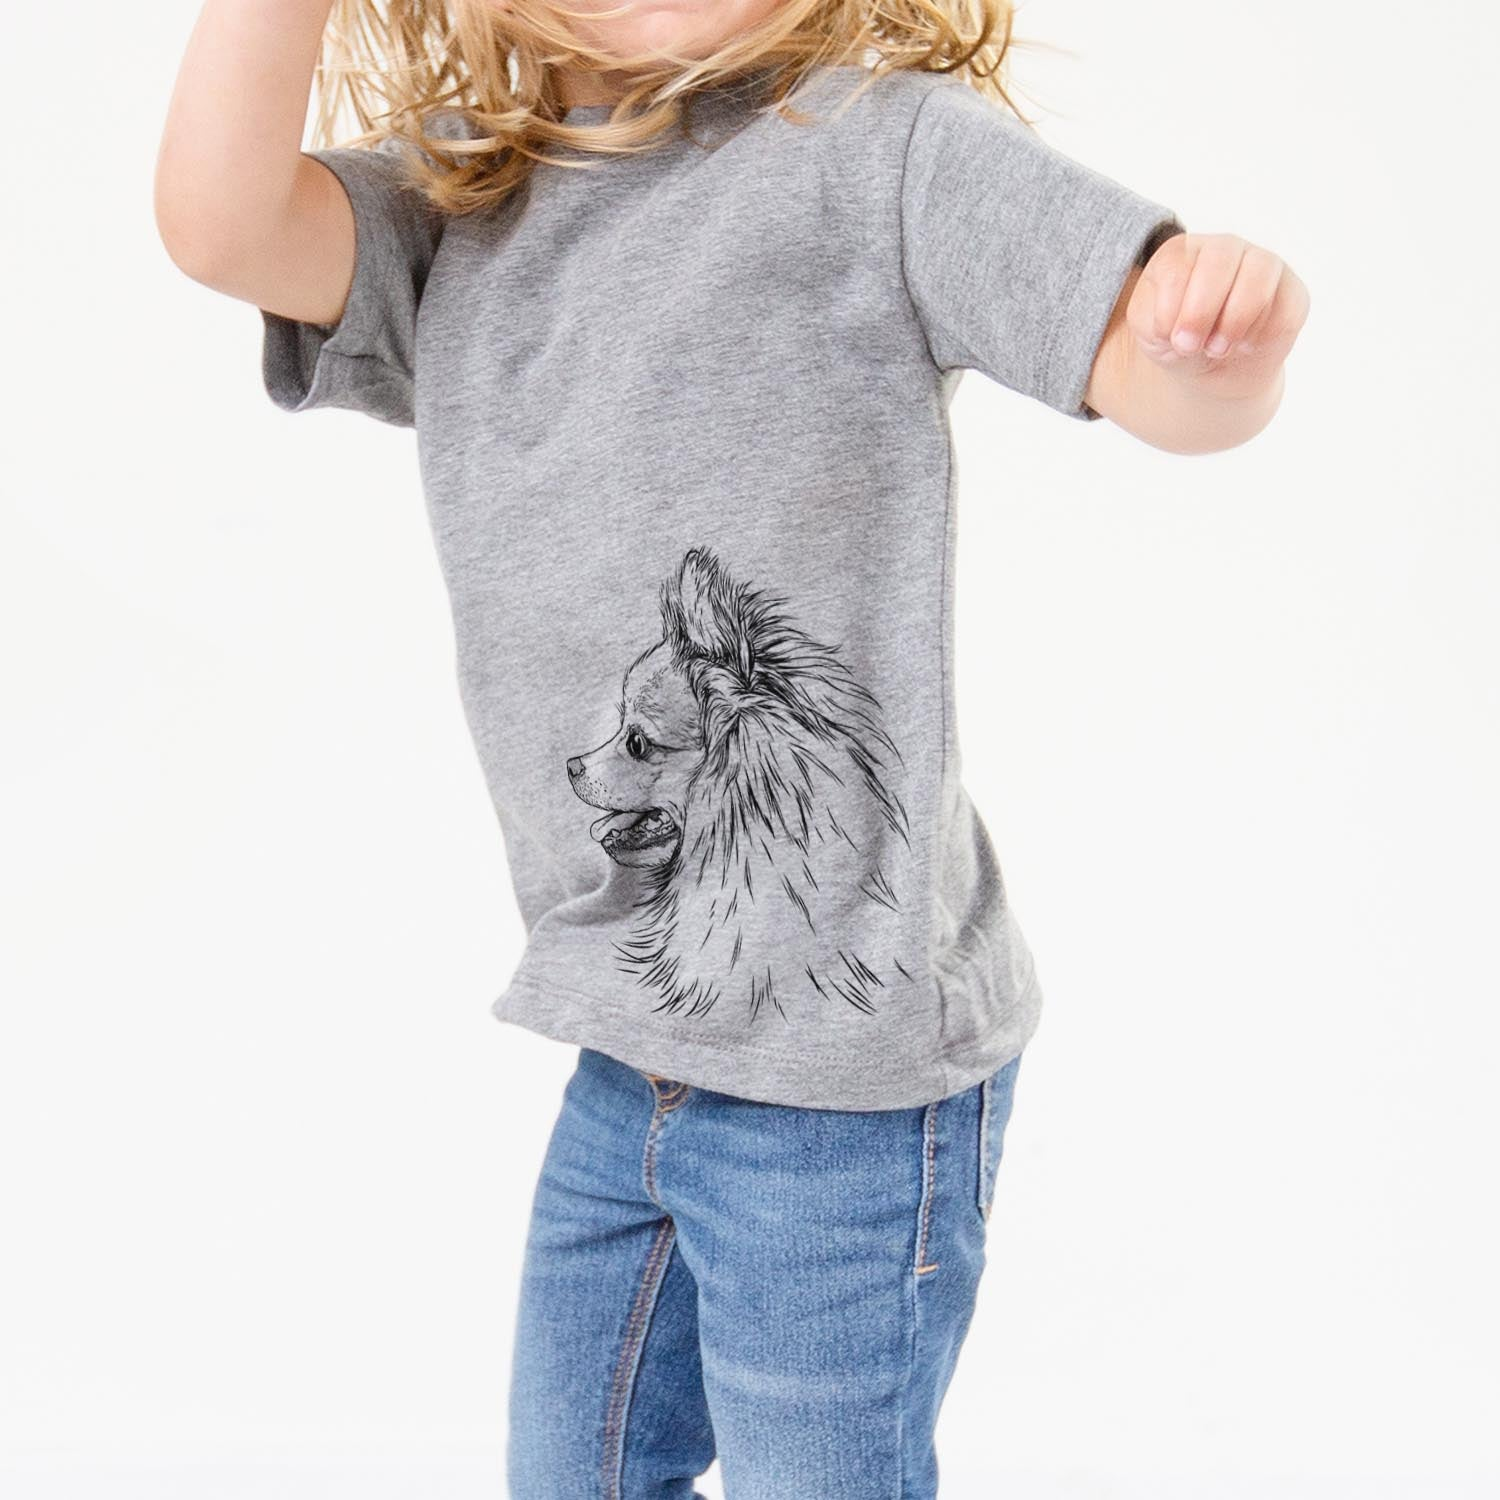 Profile Pomeranian - Kids/Youth/Toddler Shirt